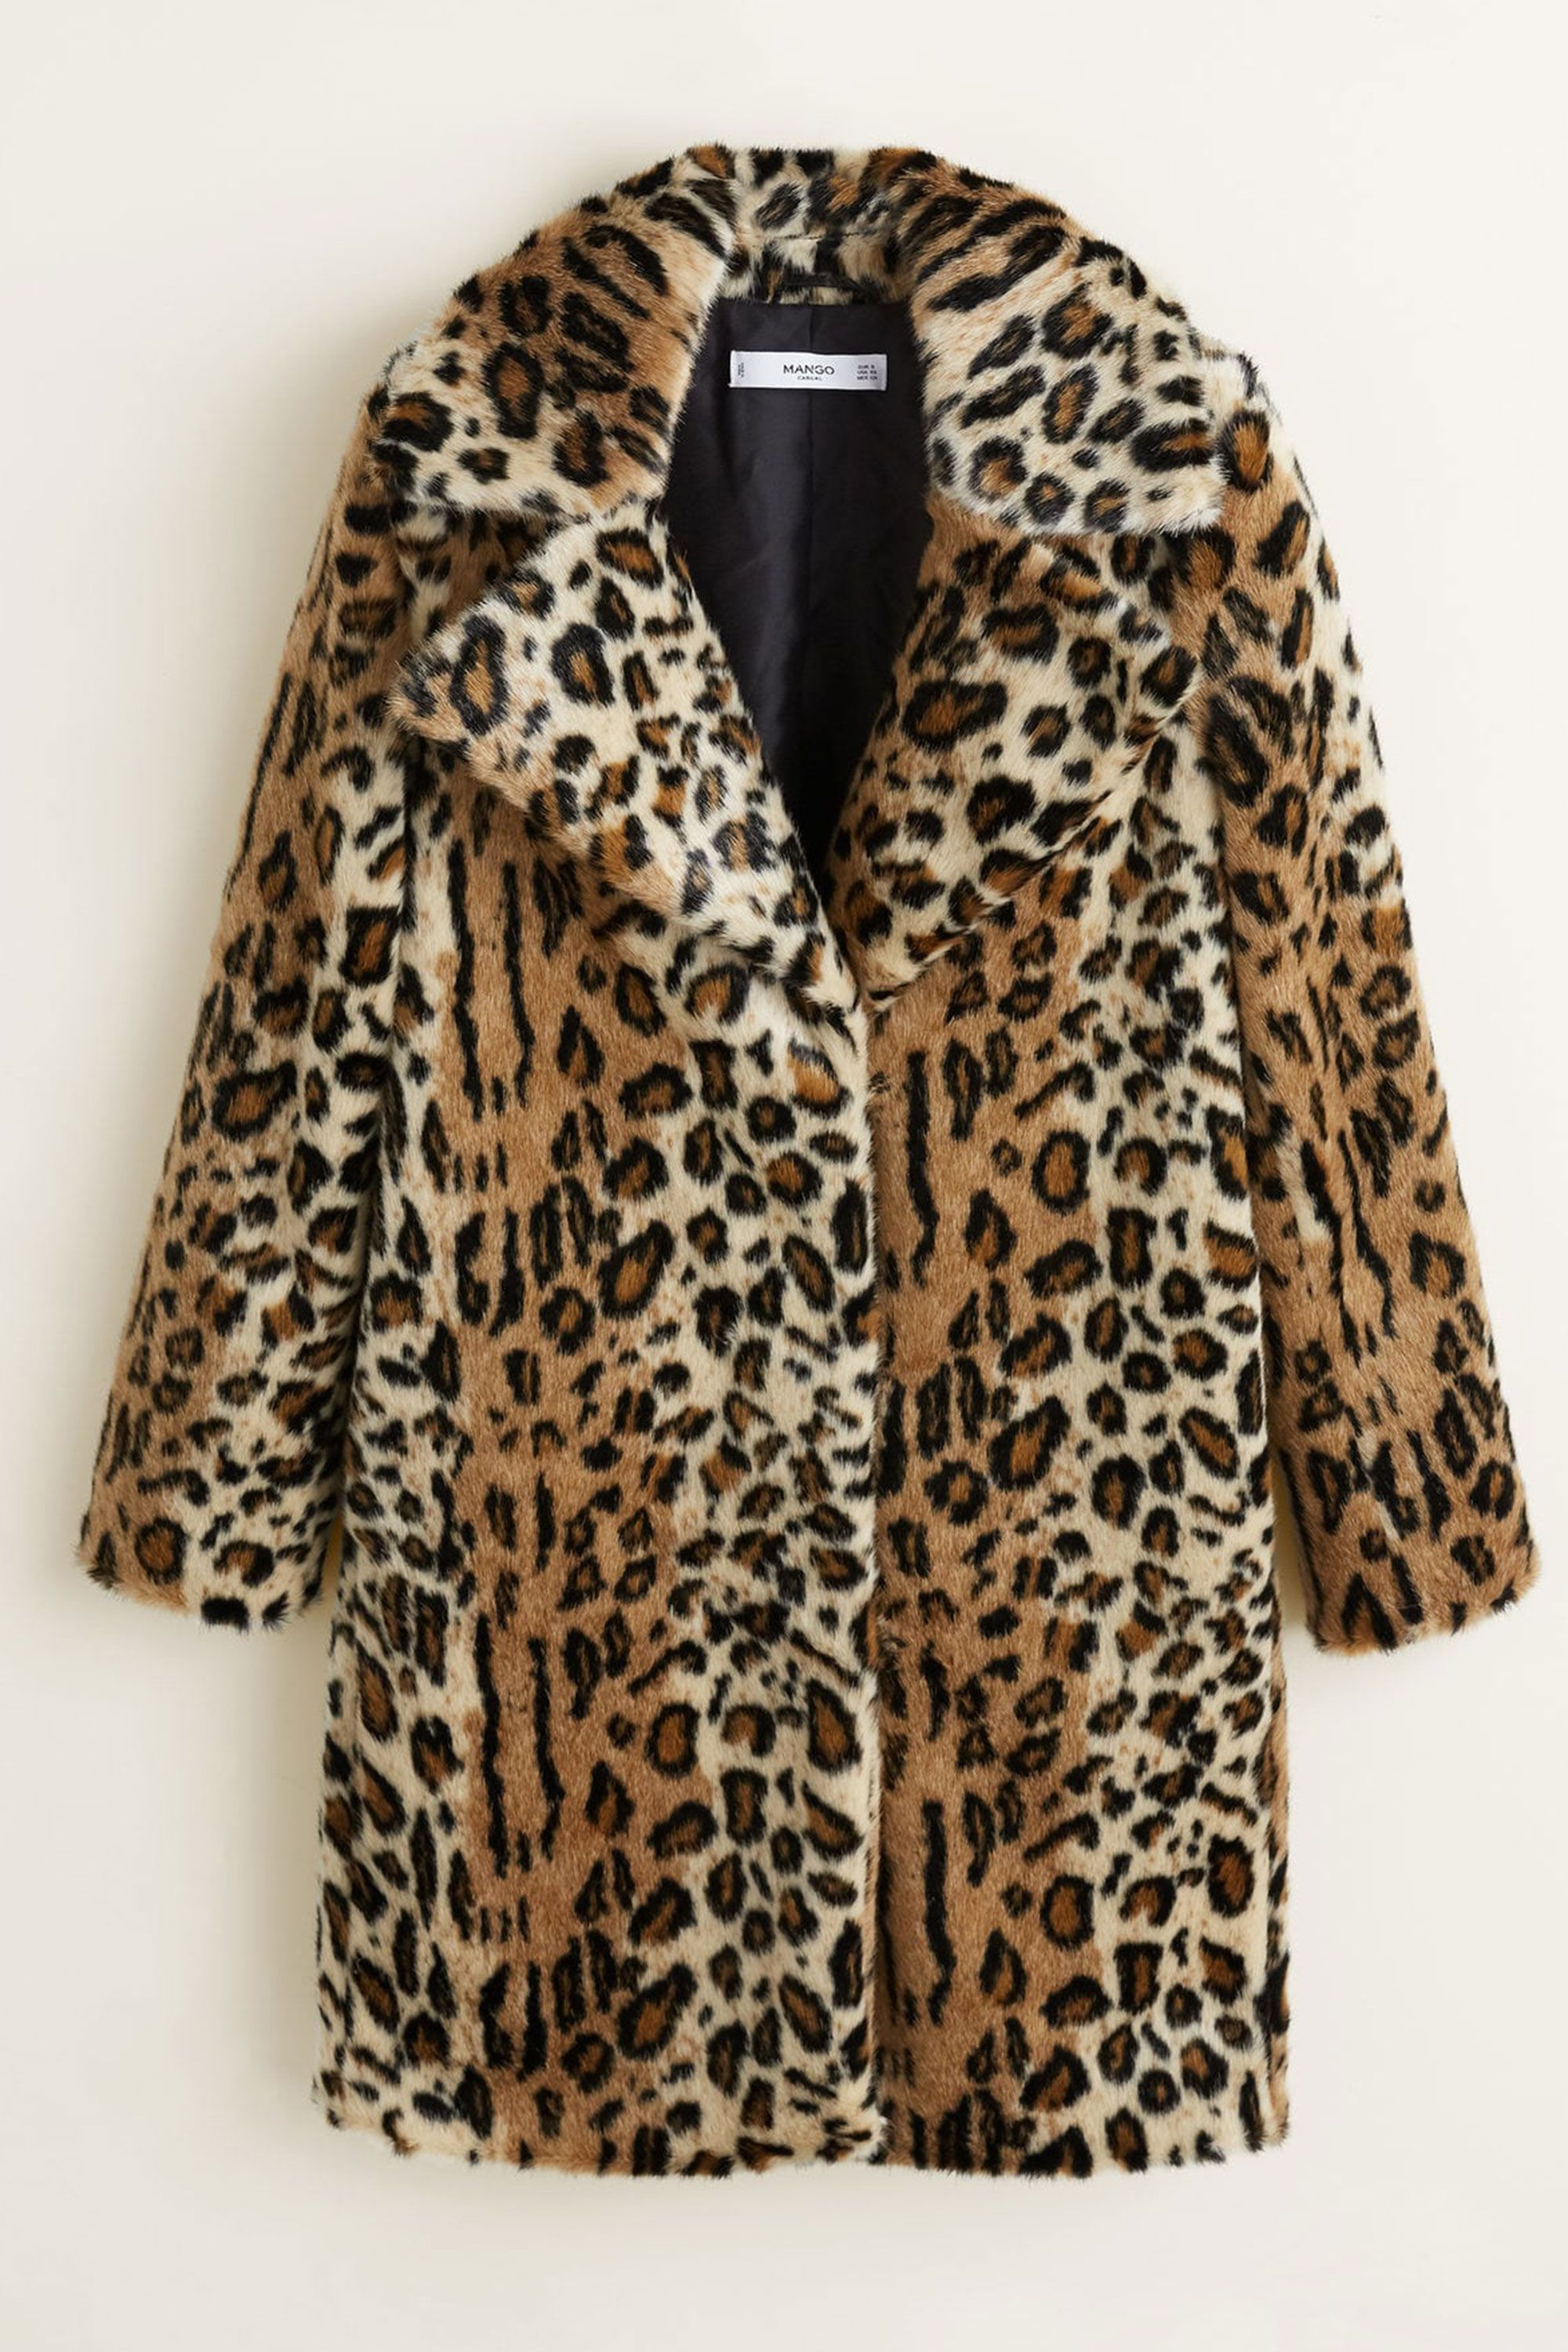 59741553ba87 The best leopard-print coats to buy this winter – Leopard coats to wear  autumn winter 2018